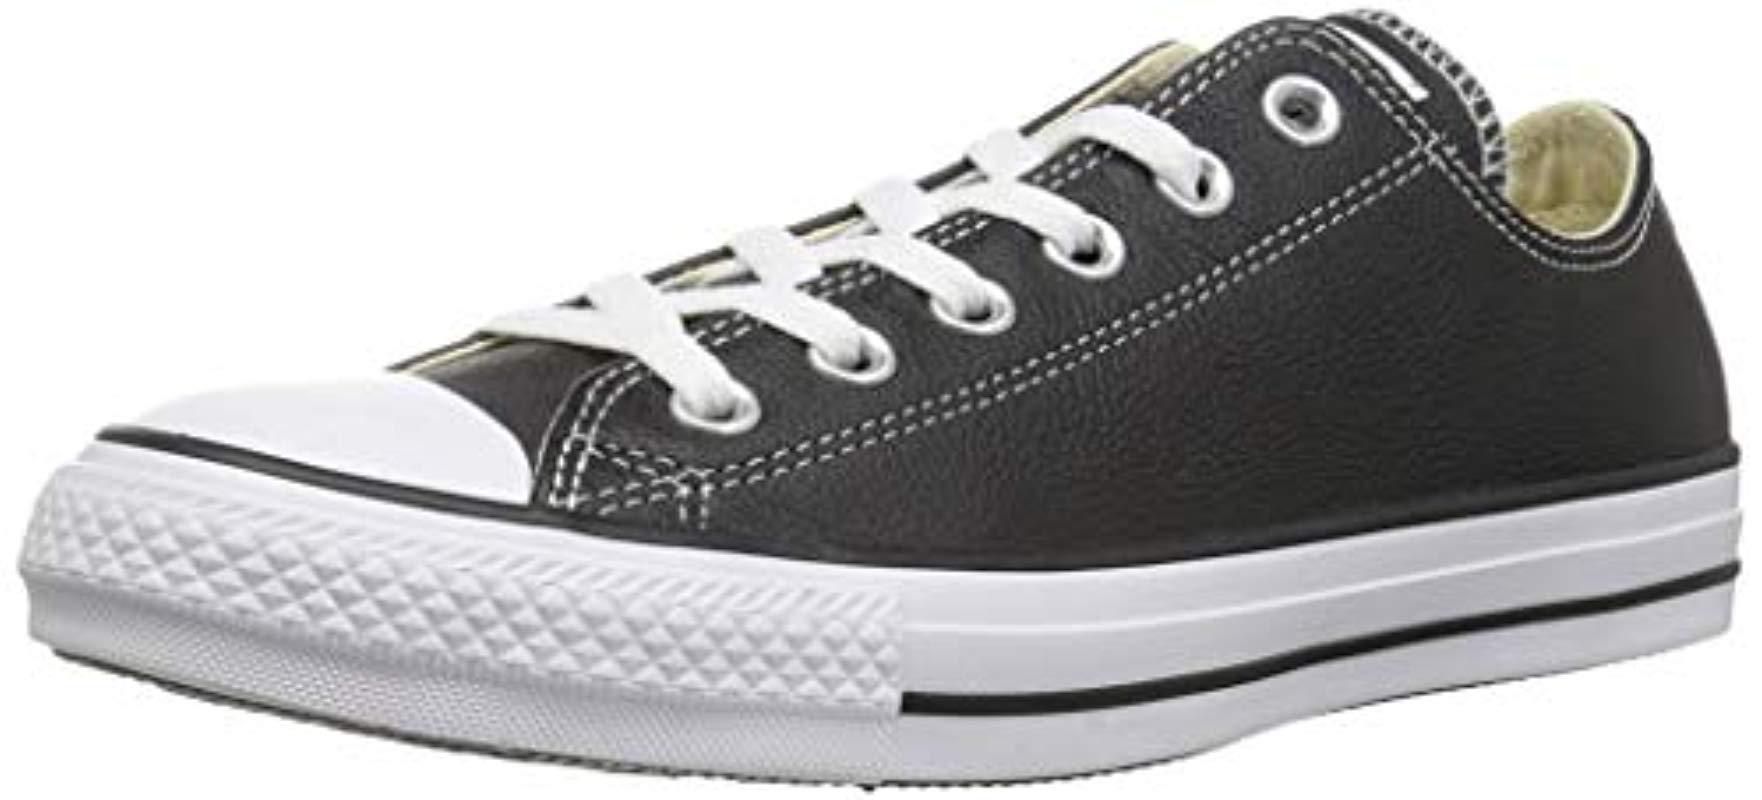 f28db59a22e2 Lyst - Converse Unisex-adult Chuck Taylor All Star Core Ox Trainers ...